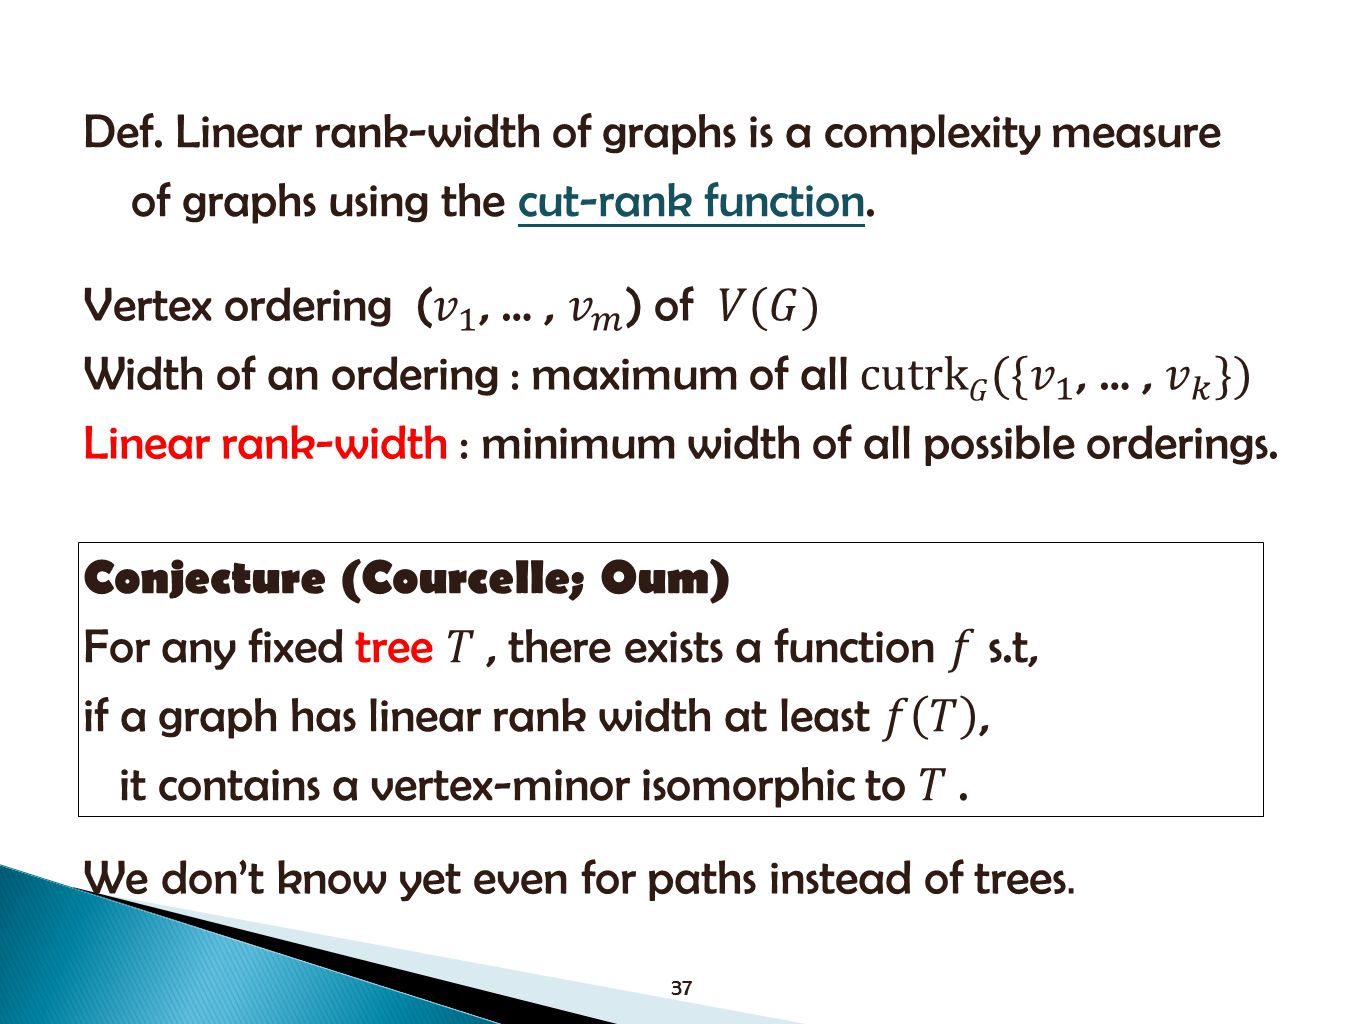 37 Def. Linear rank-width of graphs is a complexity measure of graphs using the cut-rank function.